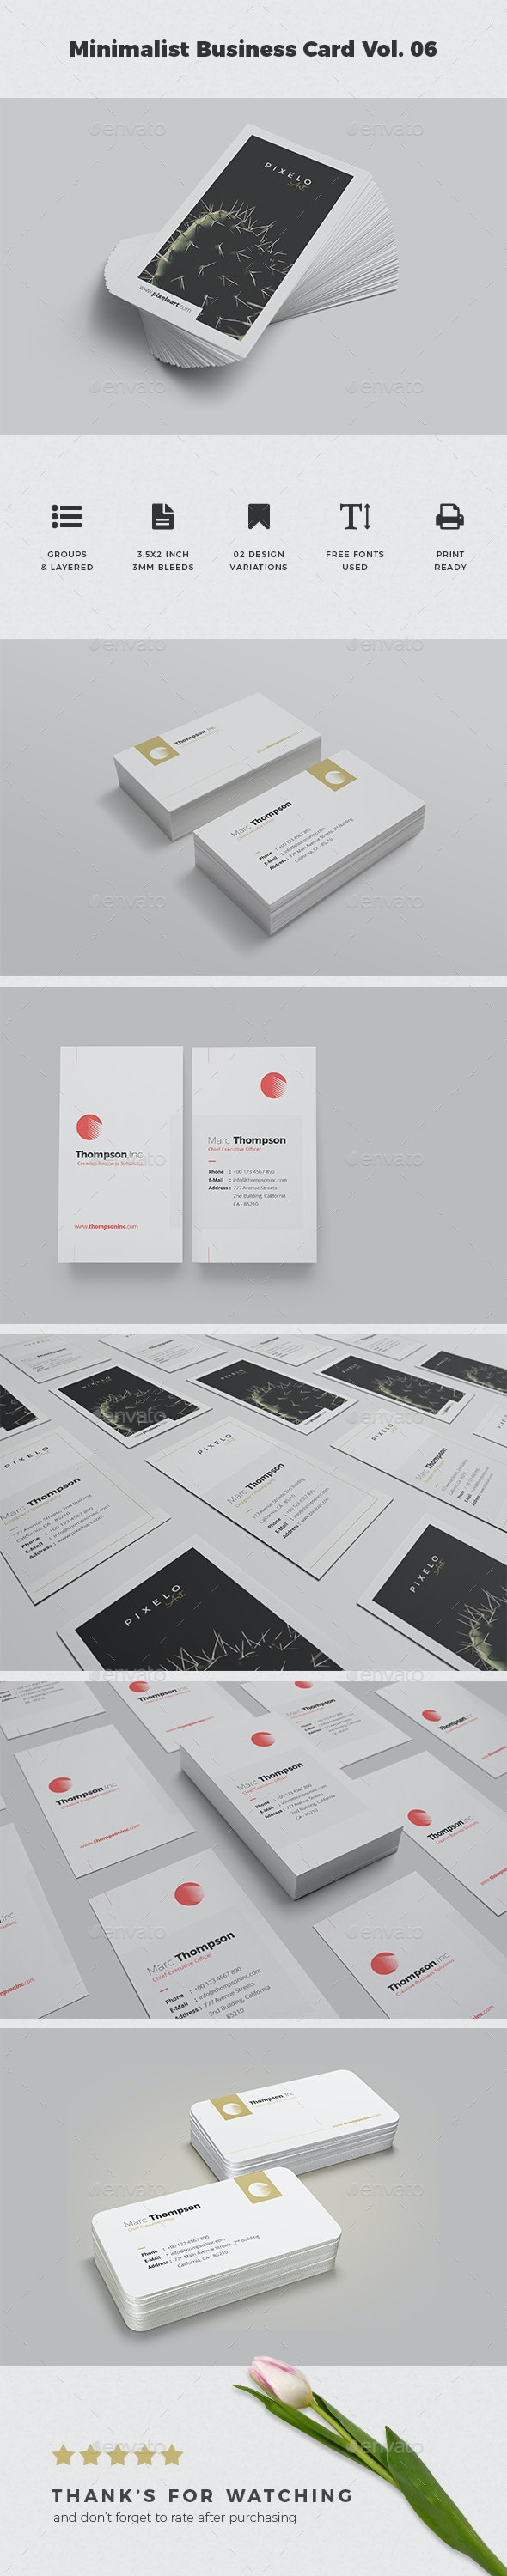 Minimalist Business Card Vol. 06 - Business Cards Print Templates